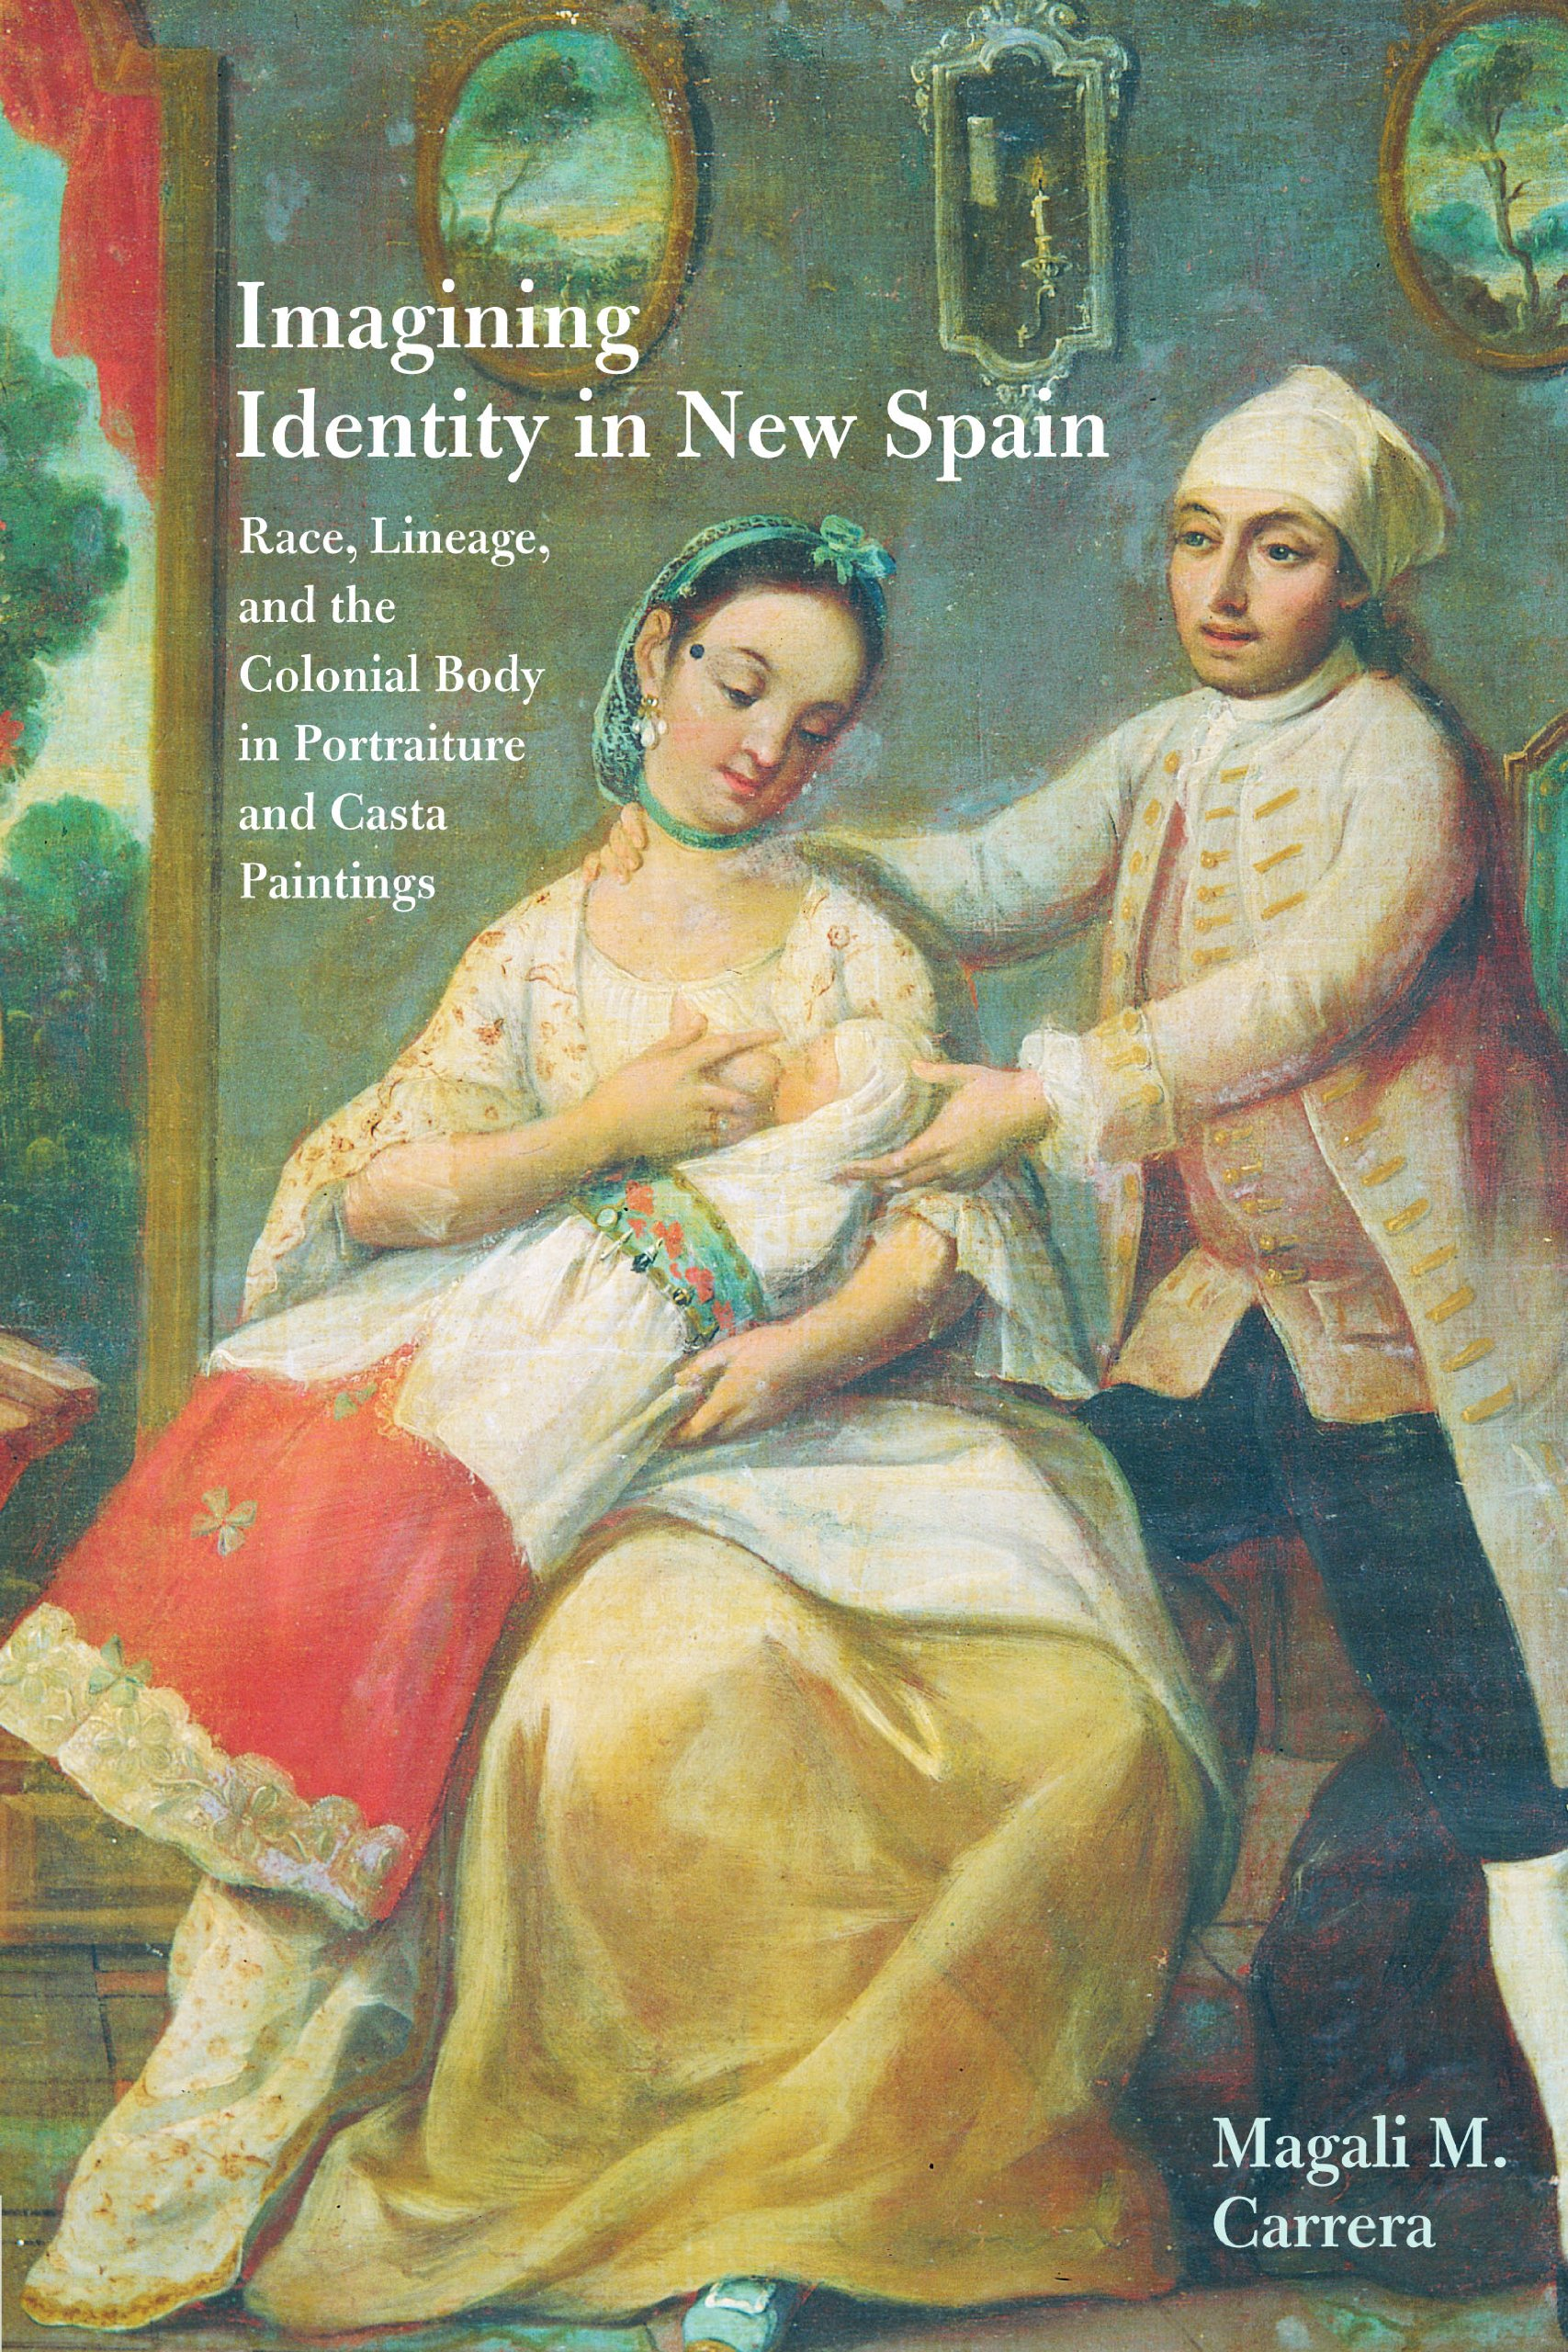 Download Imagining Identity in New Spain: Race, Lineage, and the Colonial Body in Portraiture and Casta Paintings (Joe R. and Teresa Lozano Long Series in Latin American and Latino Art and Culture) pdf epub